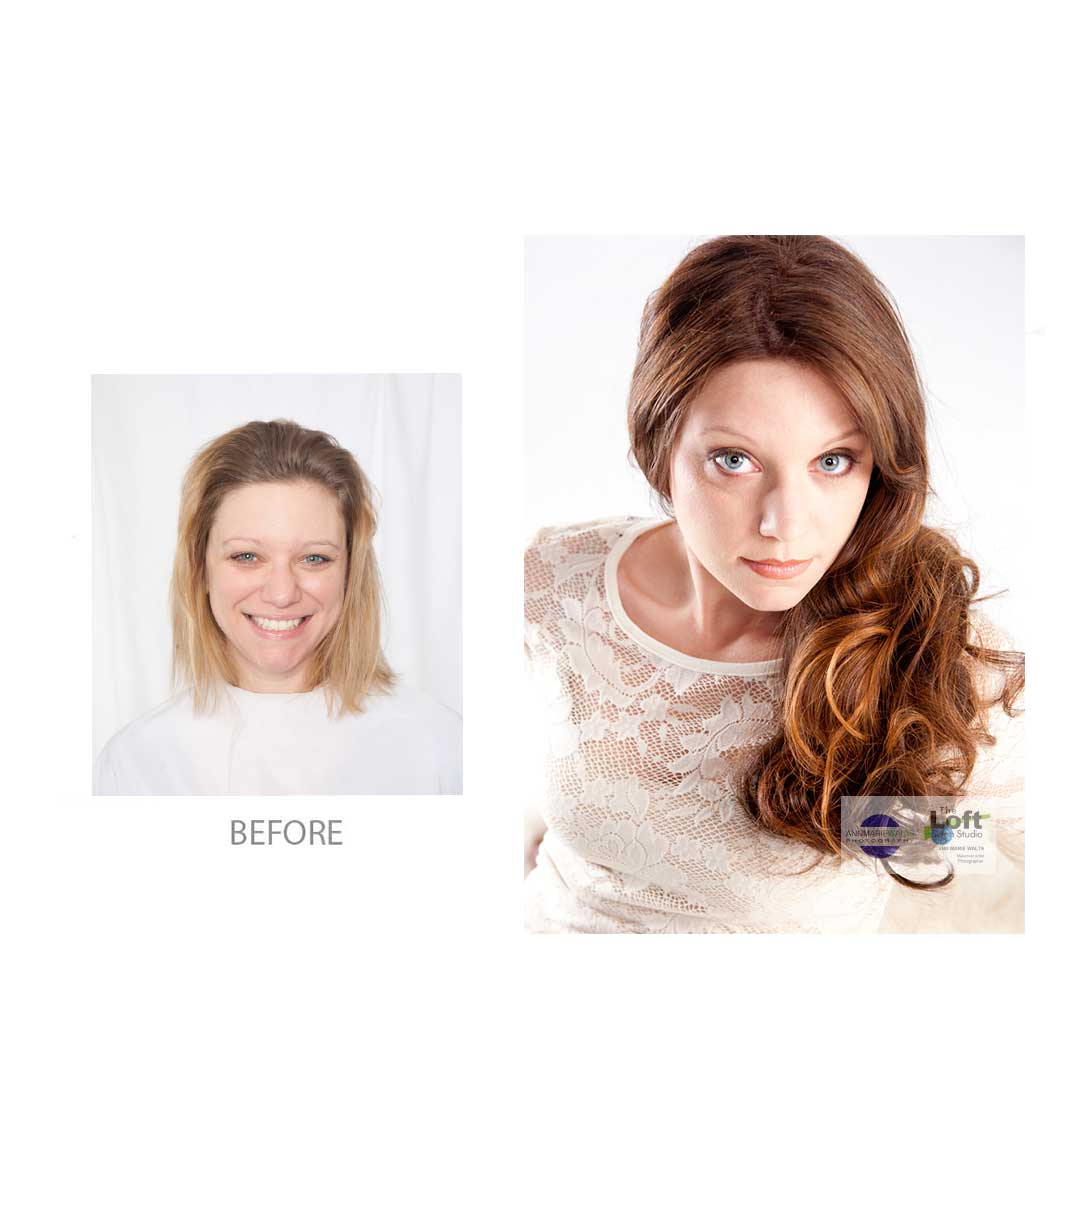 Best-Salon-For-Photography-Hair-Extensions-Western-Ma